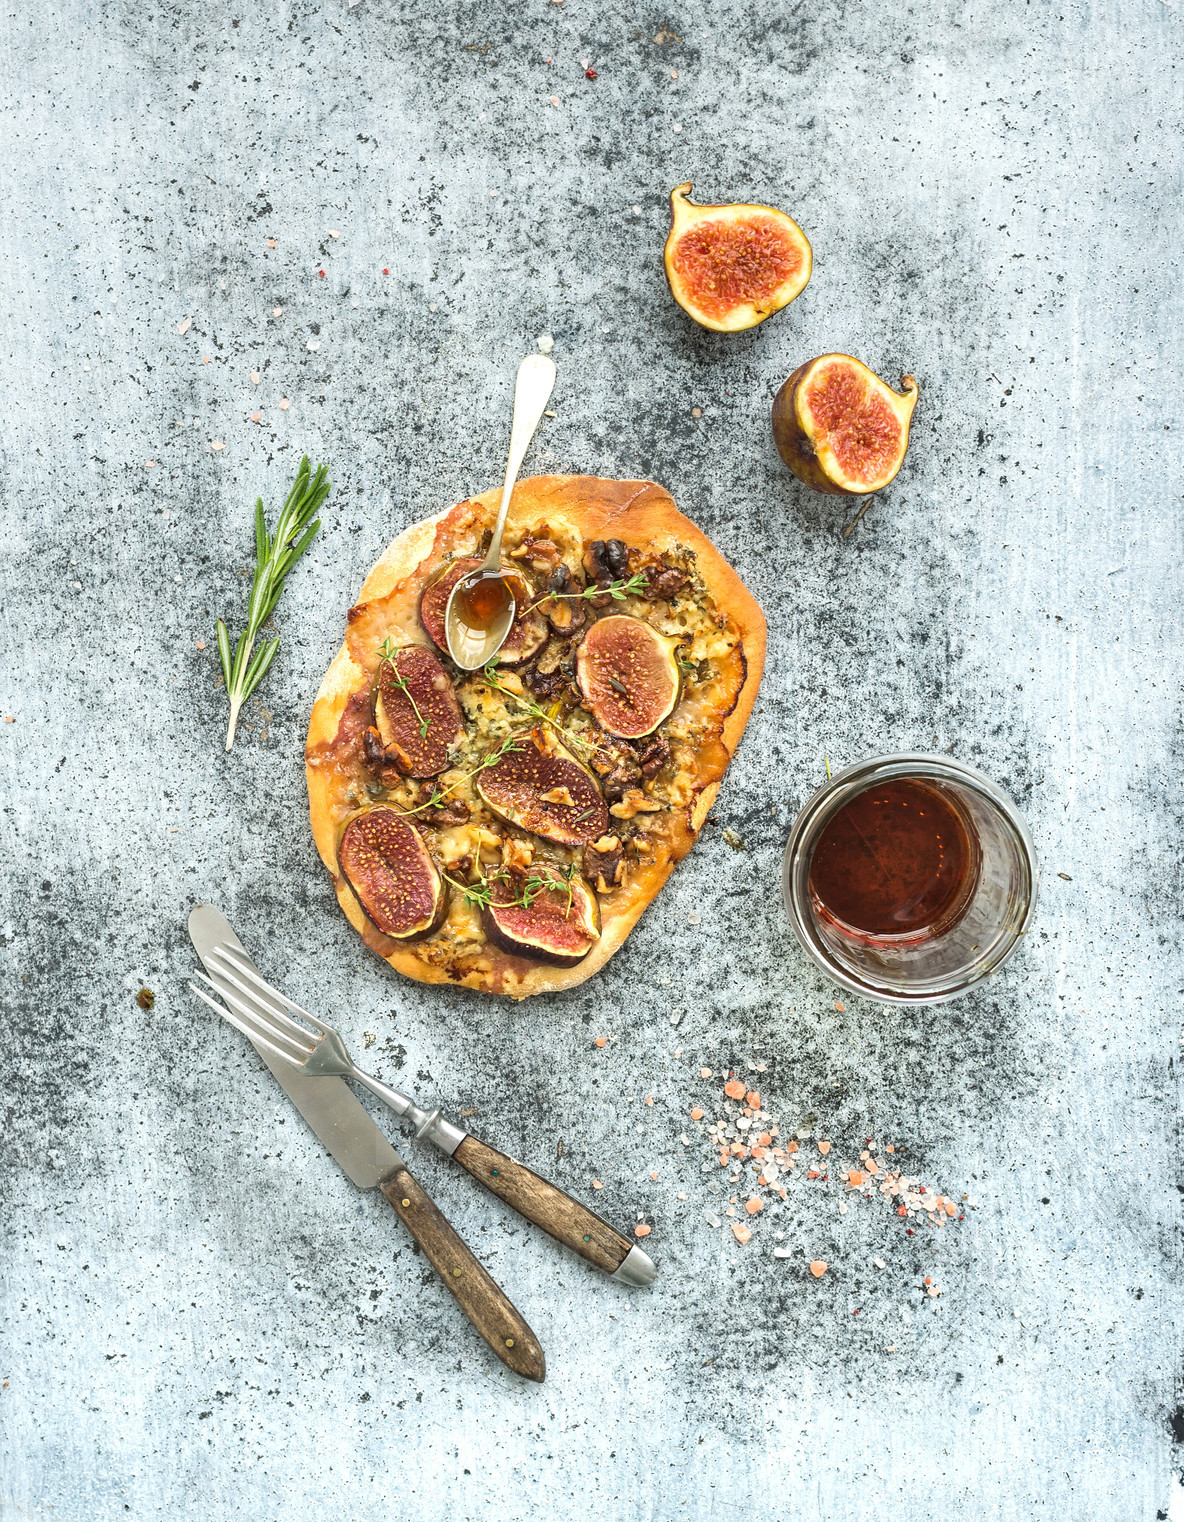 Rustic homemade pizza with figs  prosciutto and mozzarella cheese over grey grunge backdrop  Top view